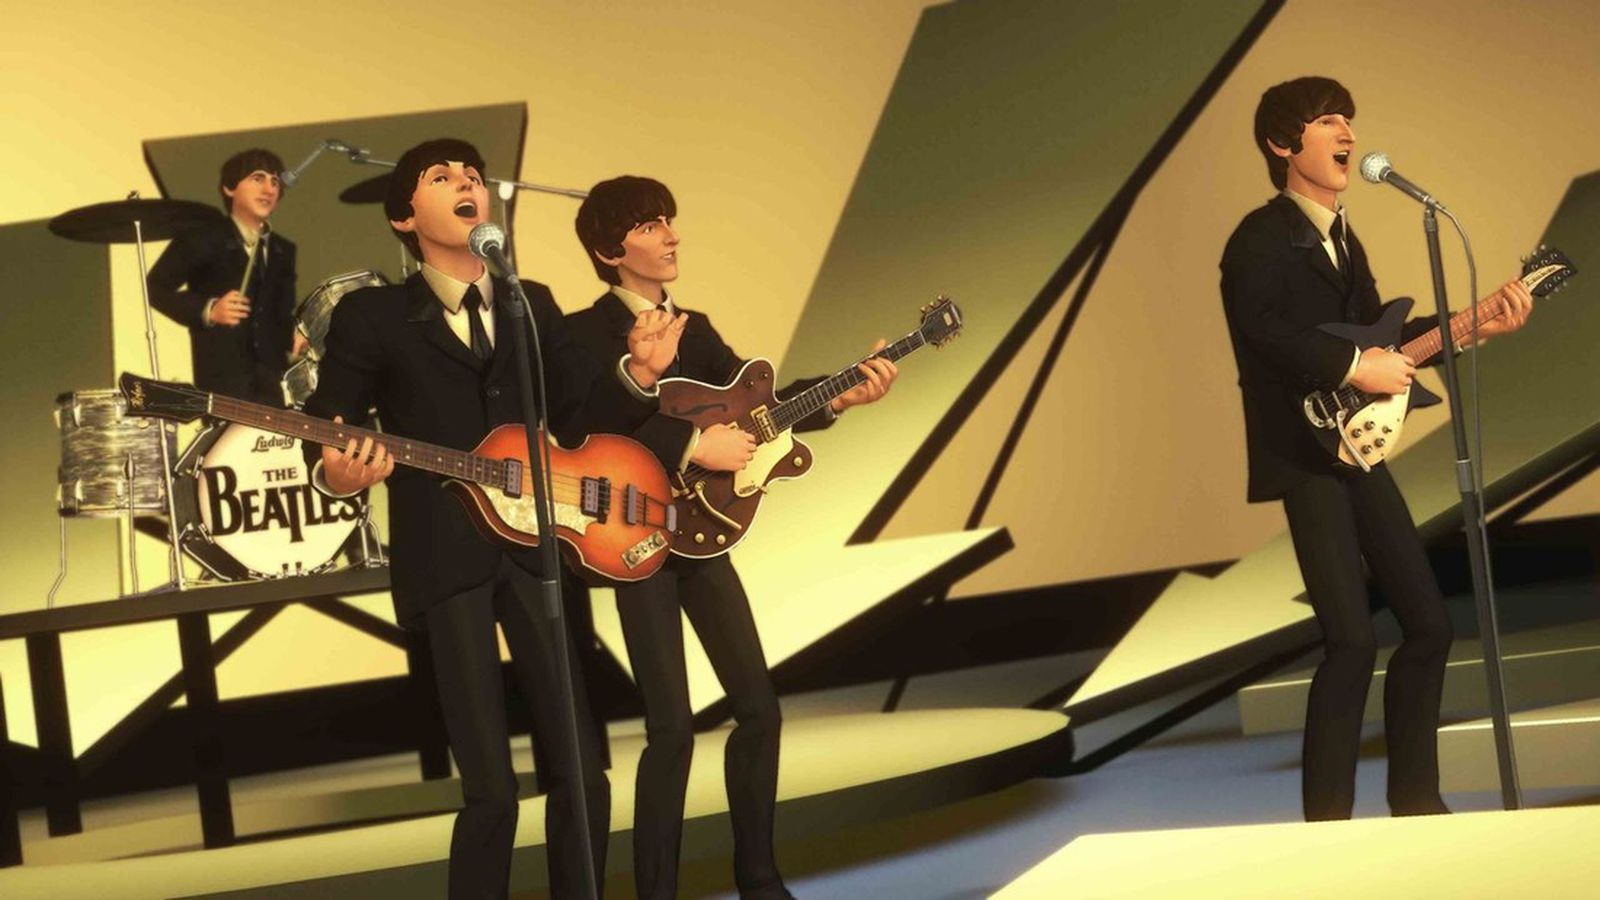 You won't be able to buy The Beatles: Rock Band's DLC ...